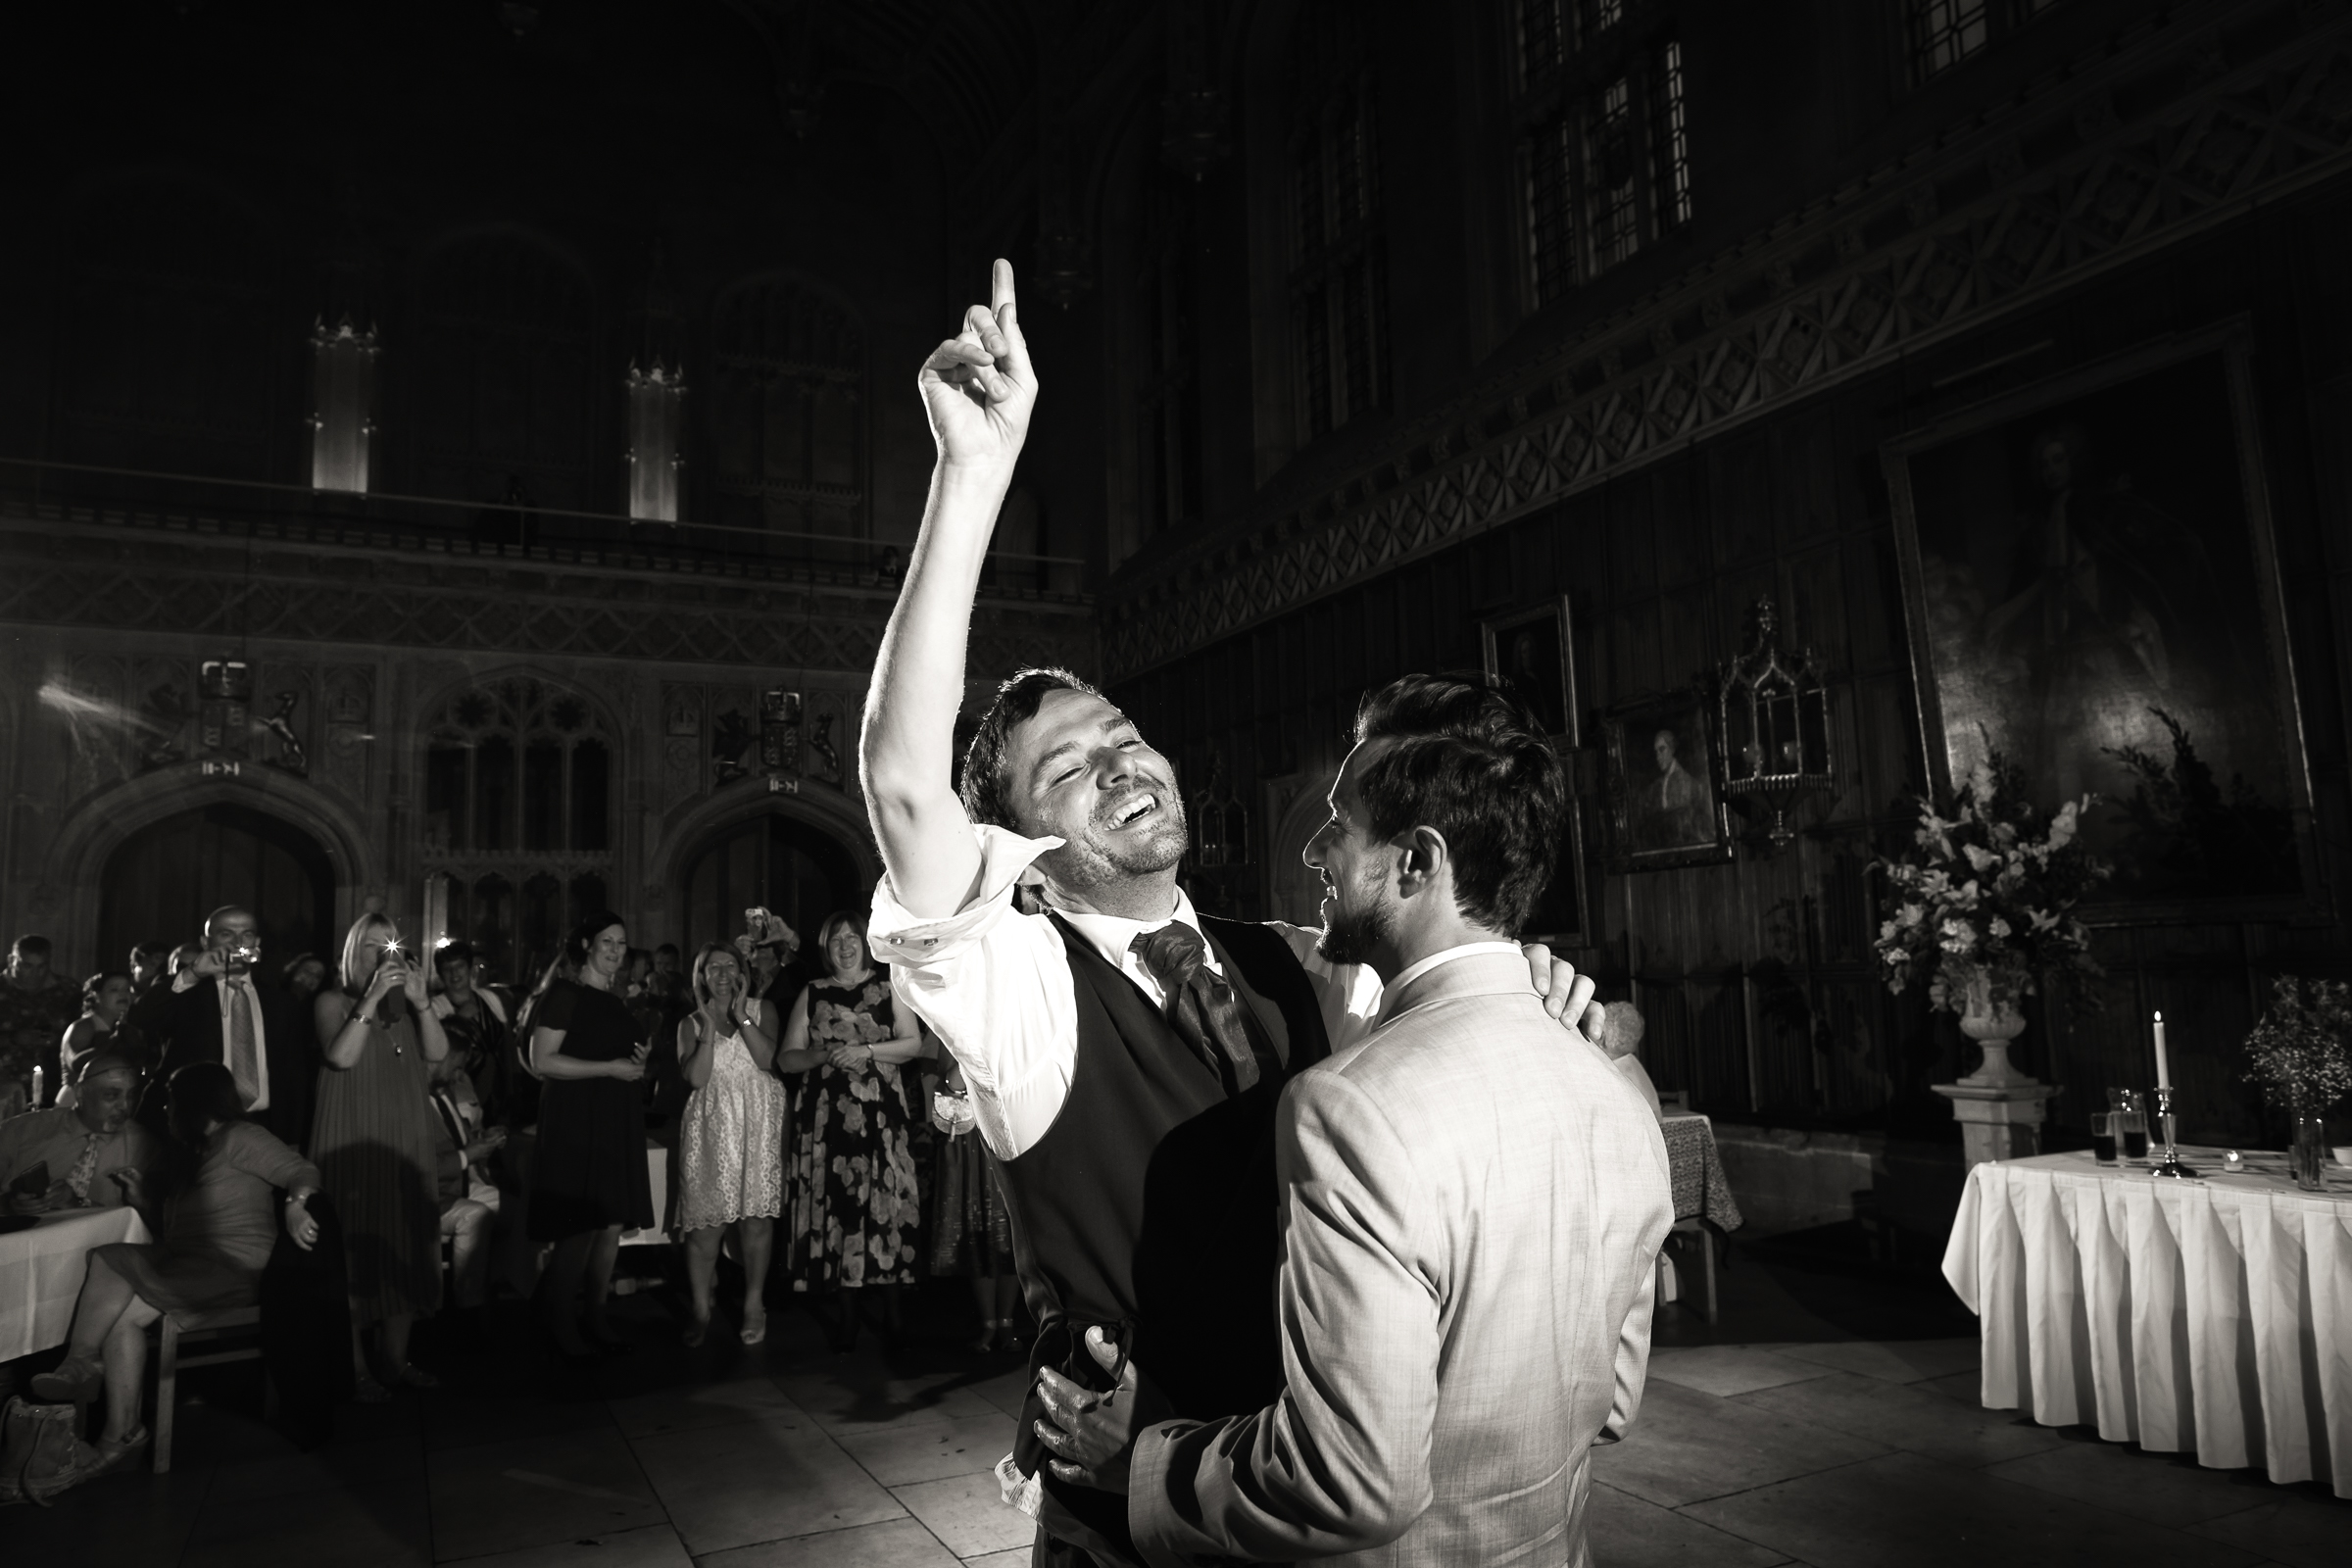 kings college cambridge university gay same sex wedding hertfordshire wedding photographer rafe abrook photography-1176.jpg